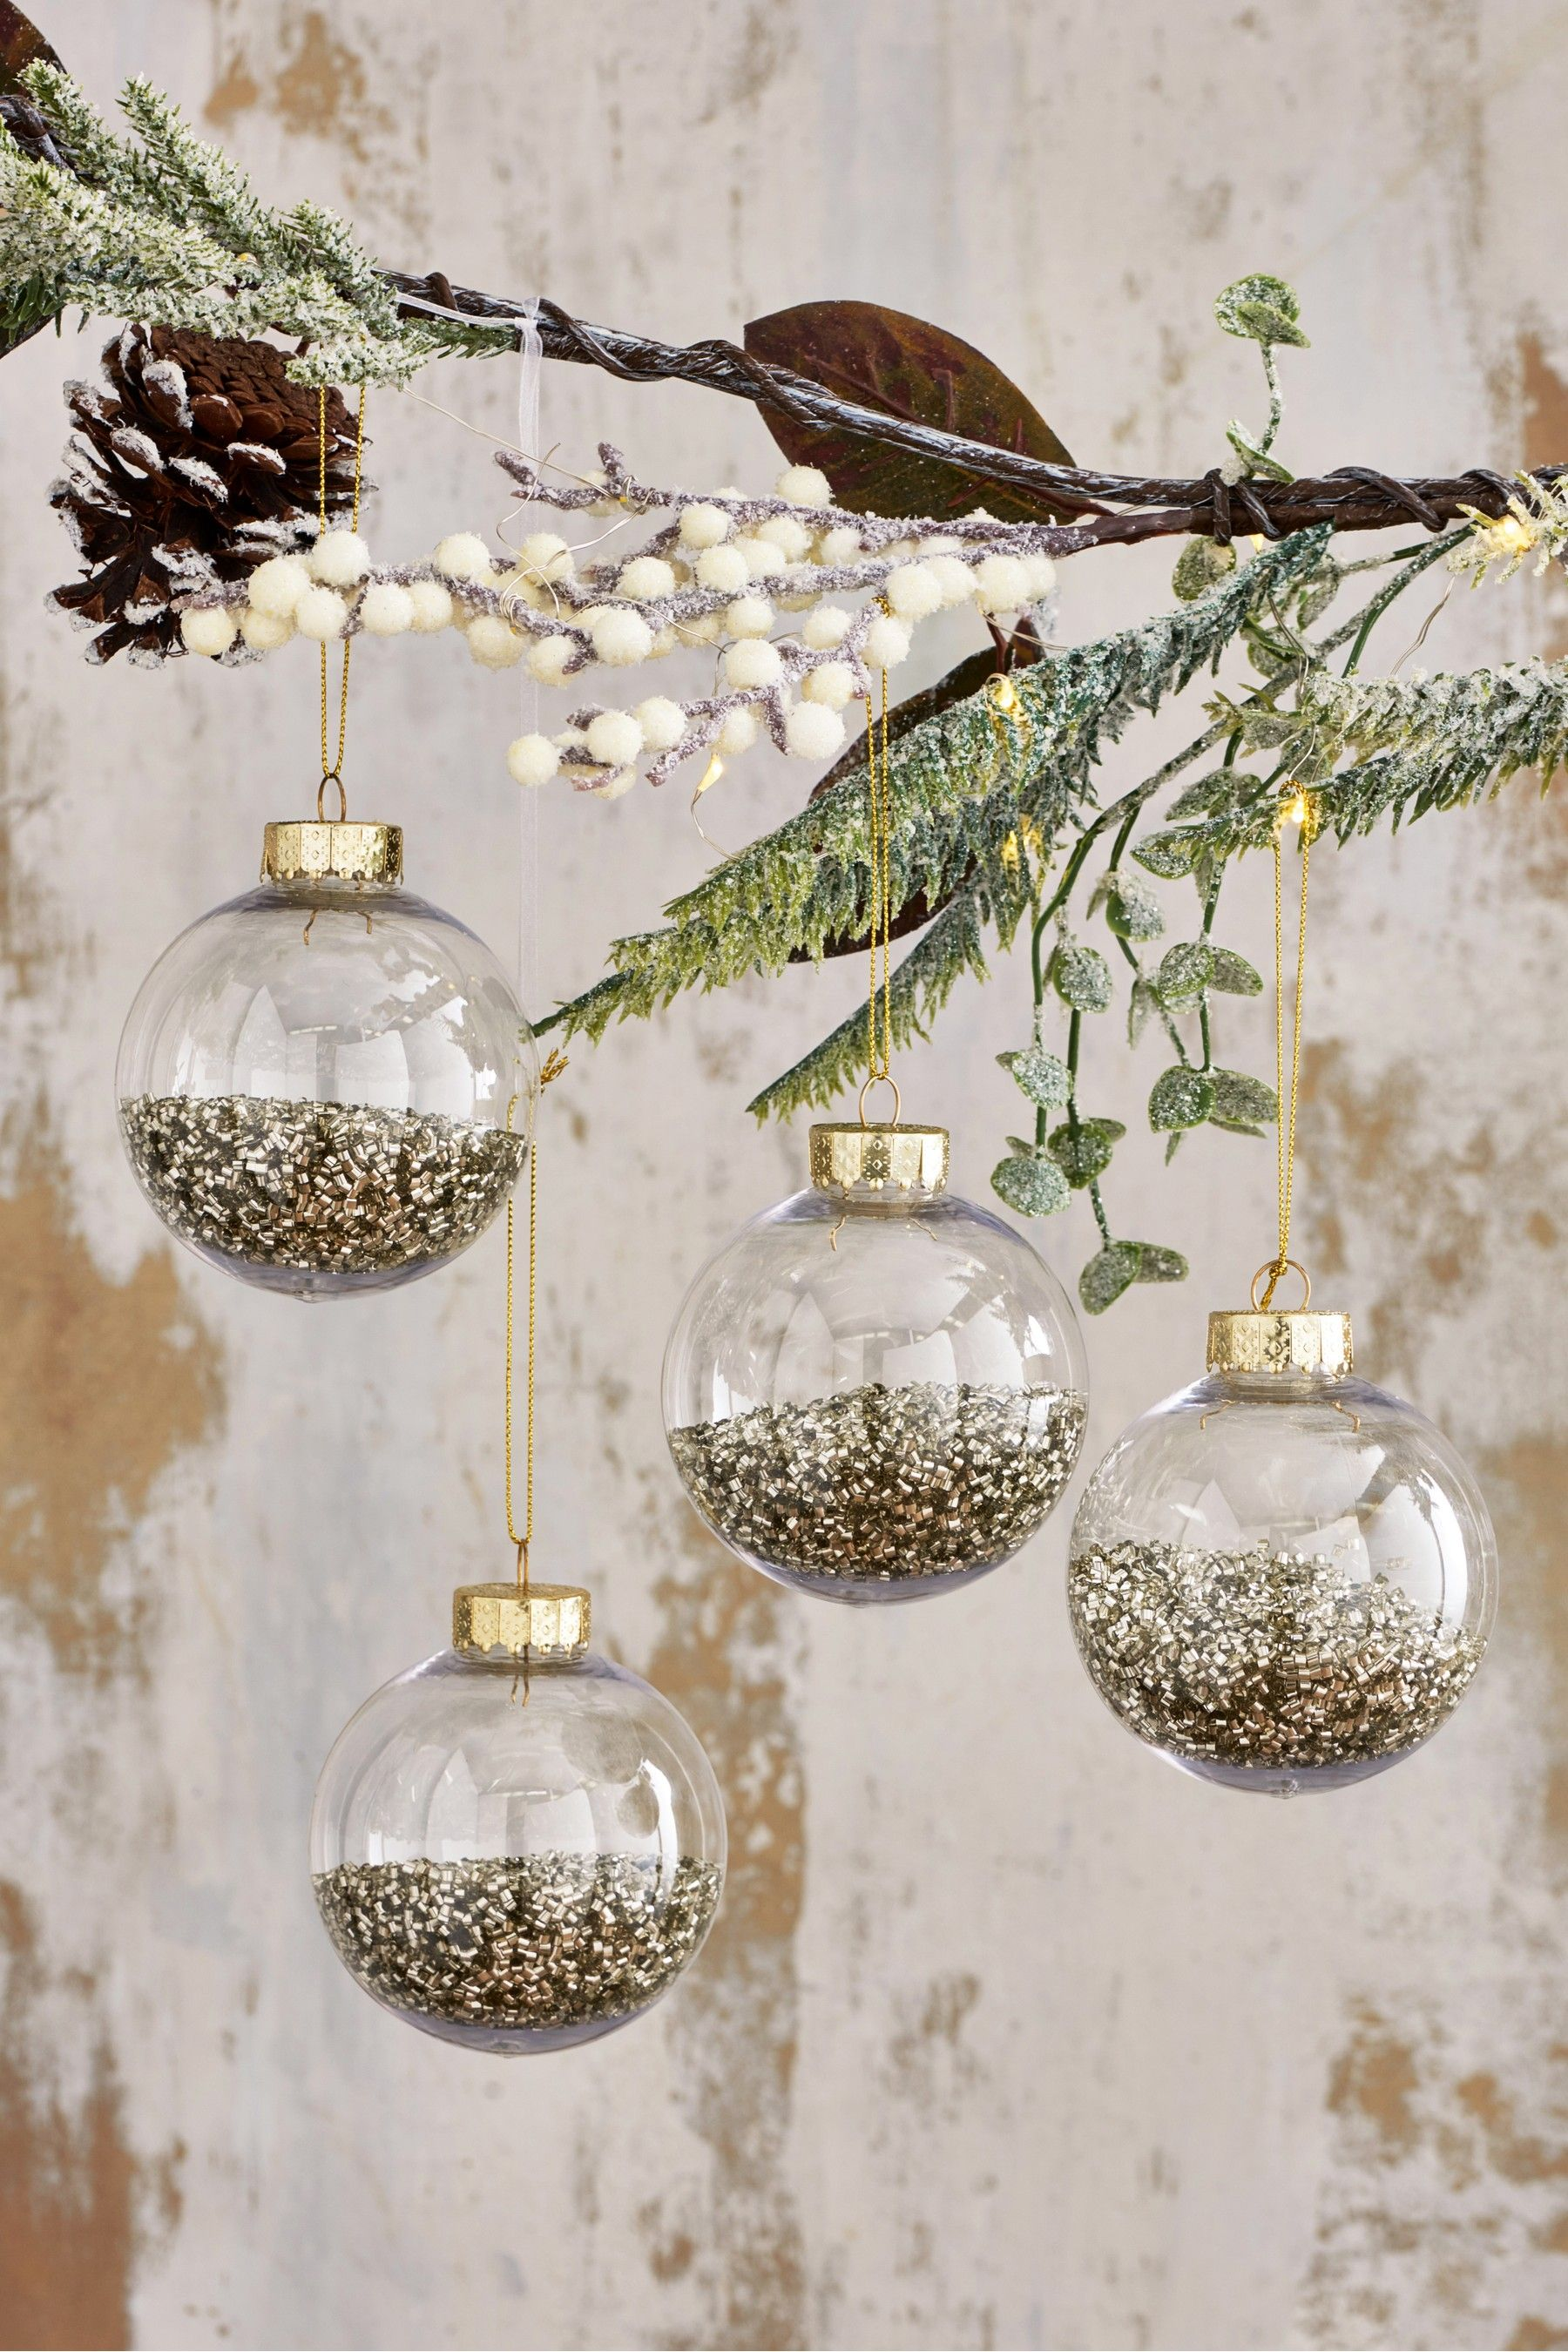 Next Set Of 4 Shaker Filled Baubles Gold Shop Decoration Christmas Bulbs White Ornaments